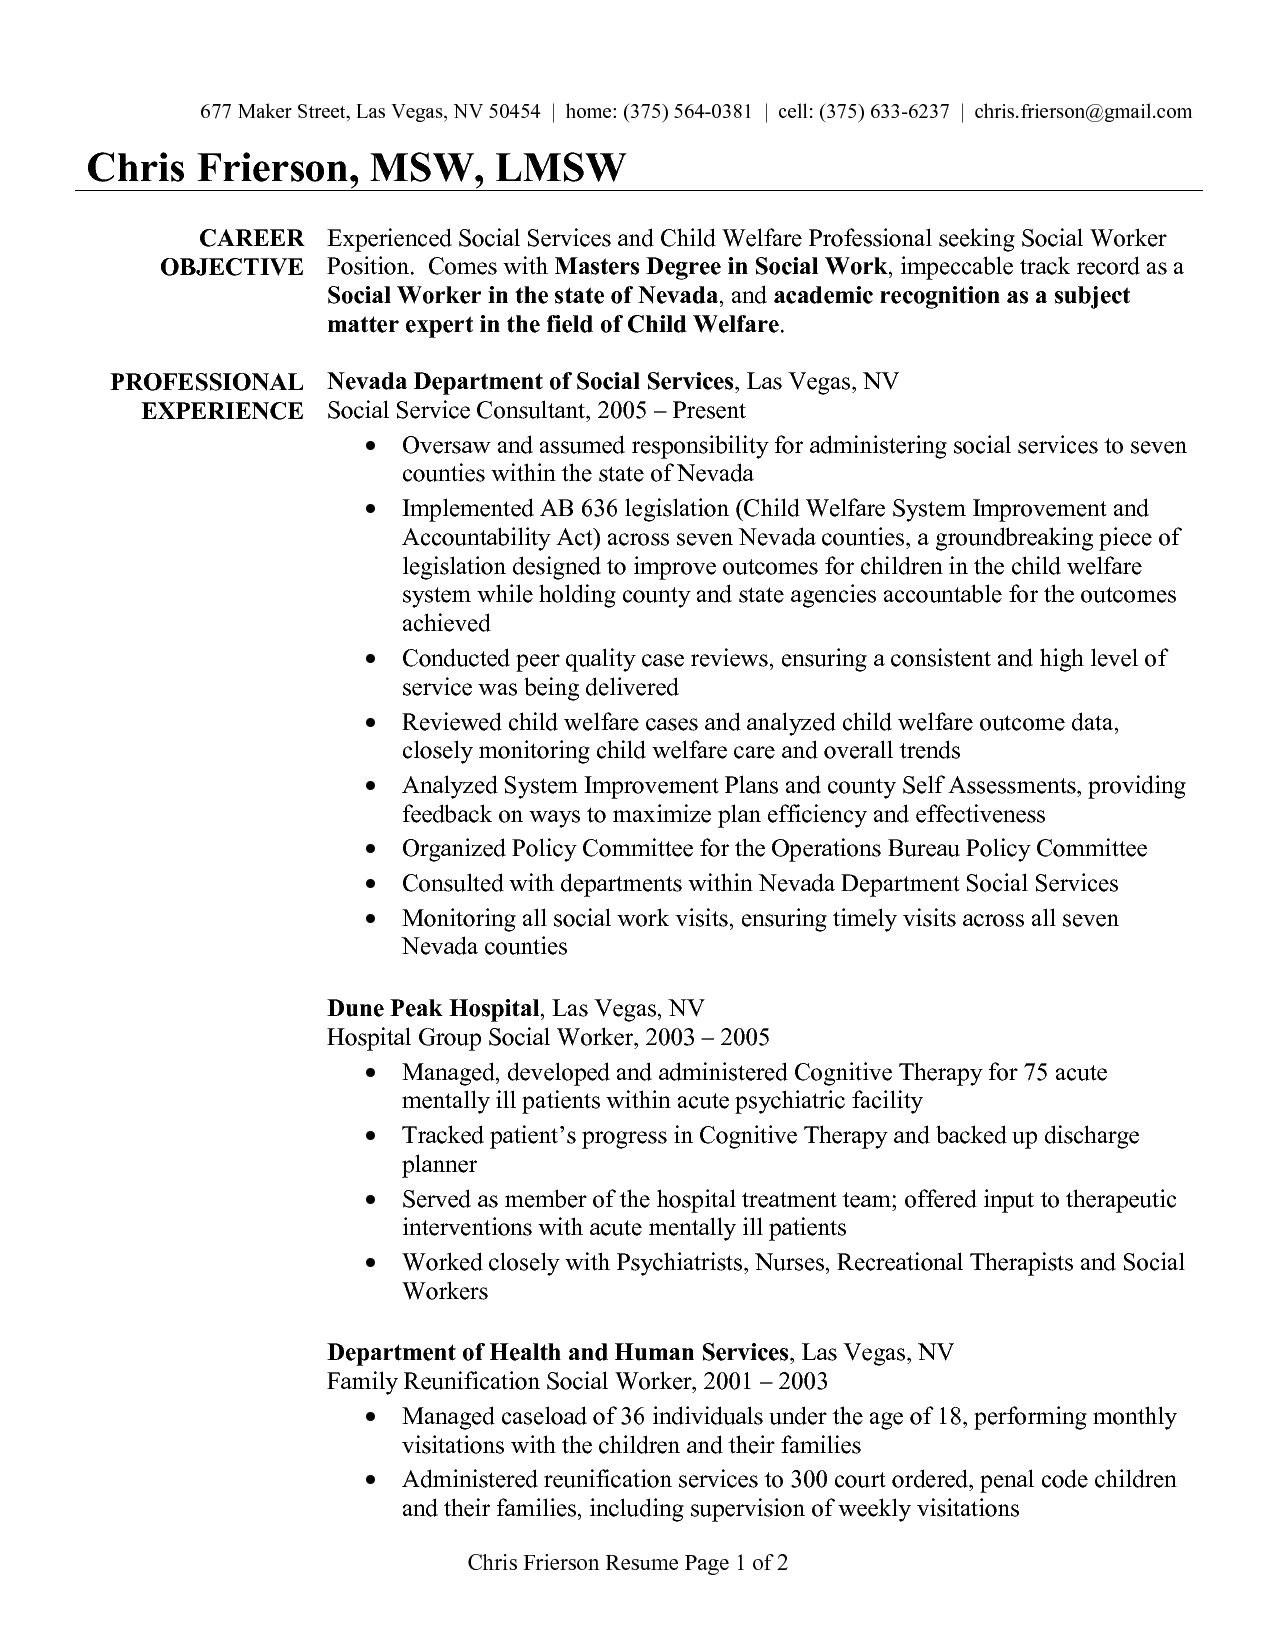 social work resume examples social worker resume sample social work